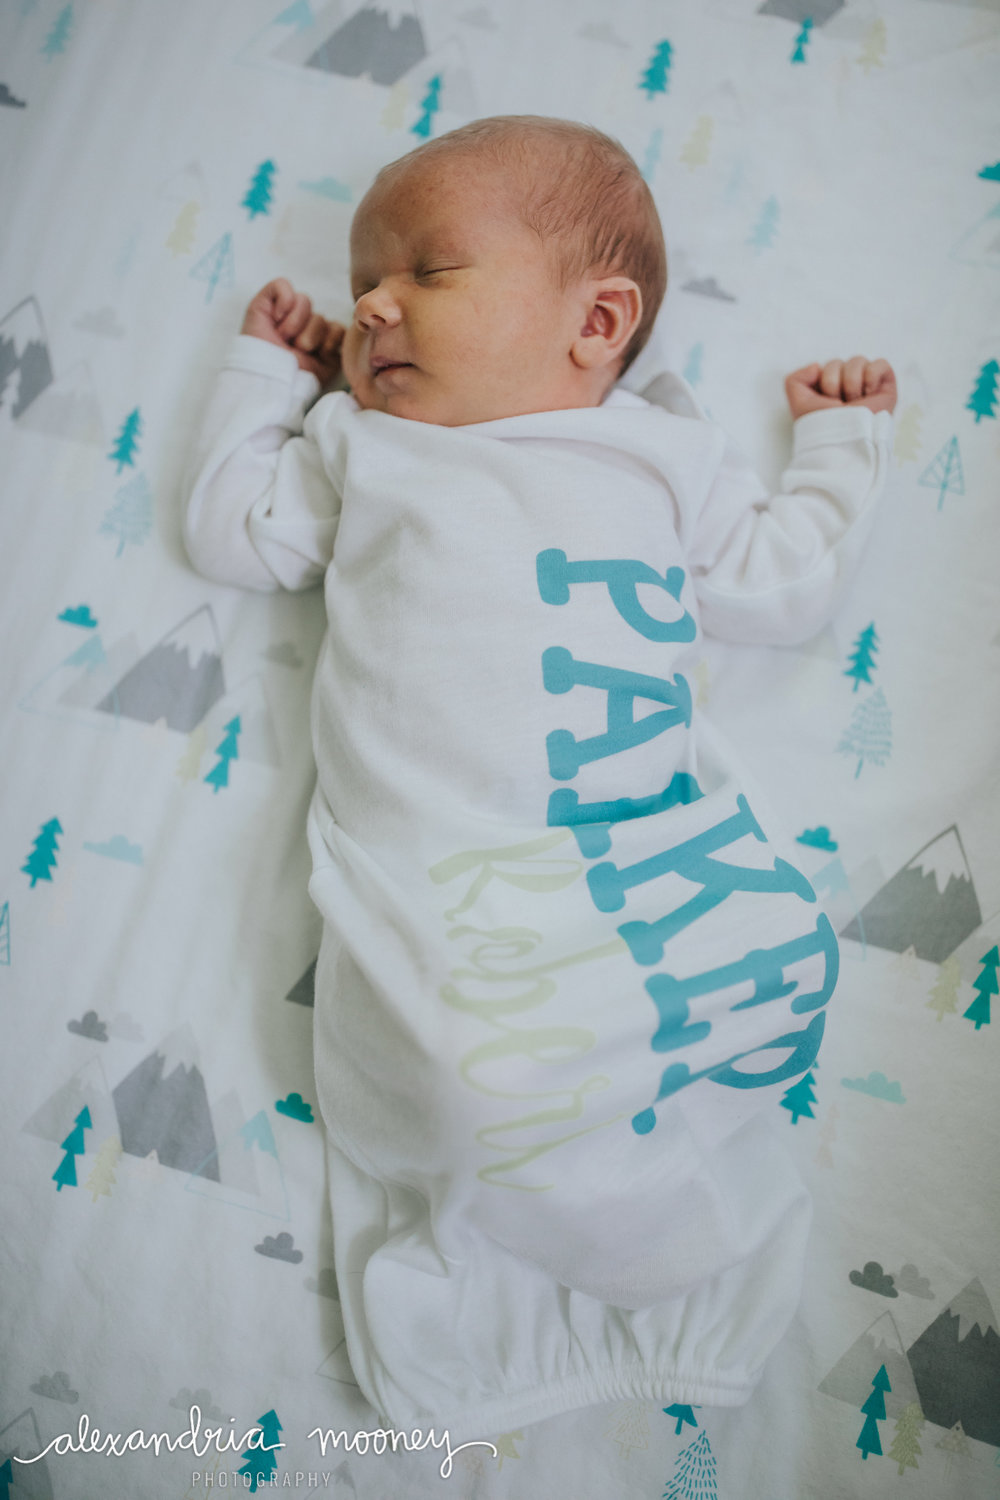 Parker_Newborn_Watermarked-1.jpg